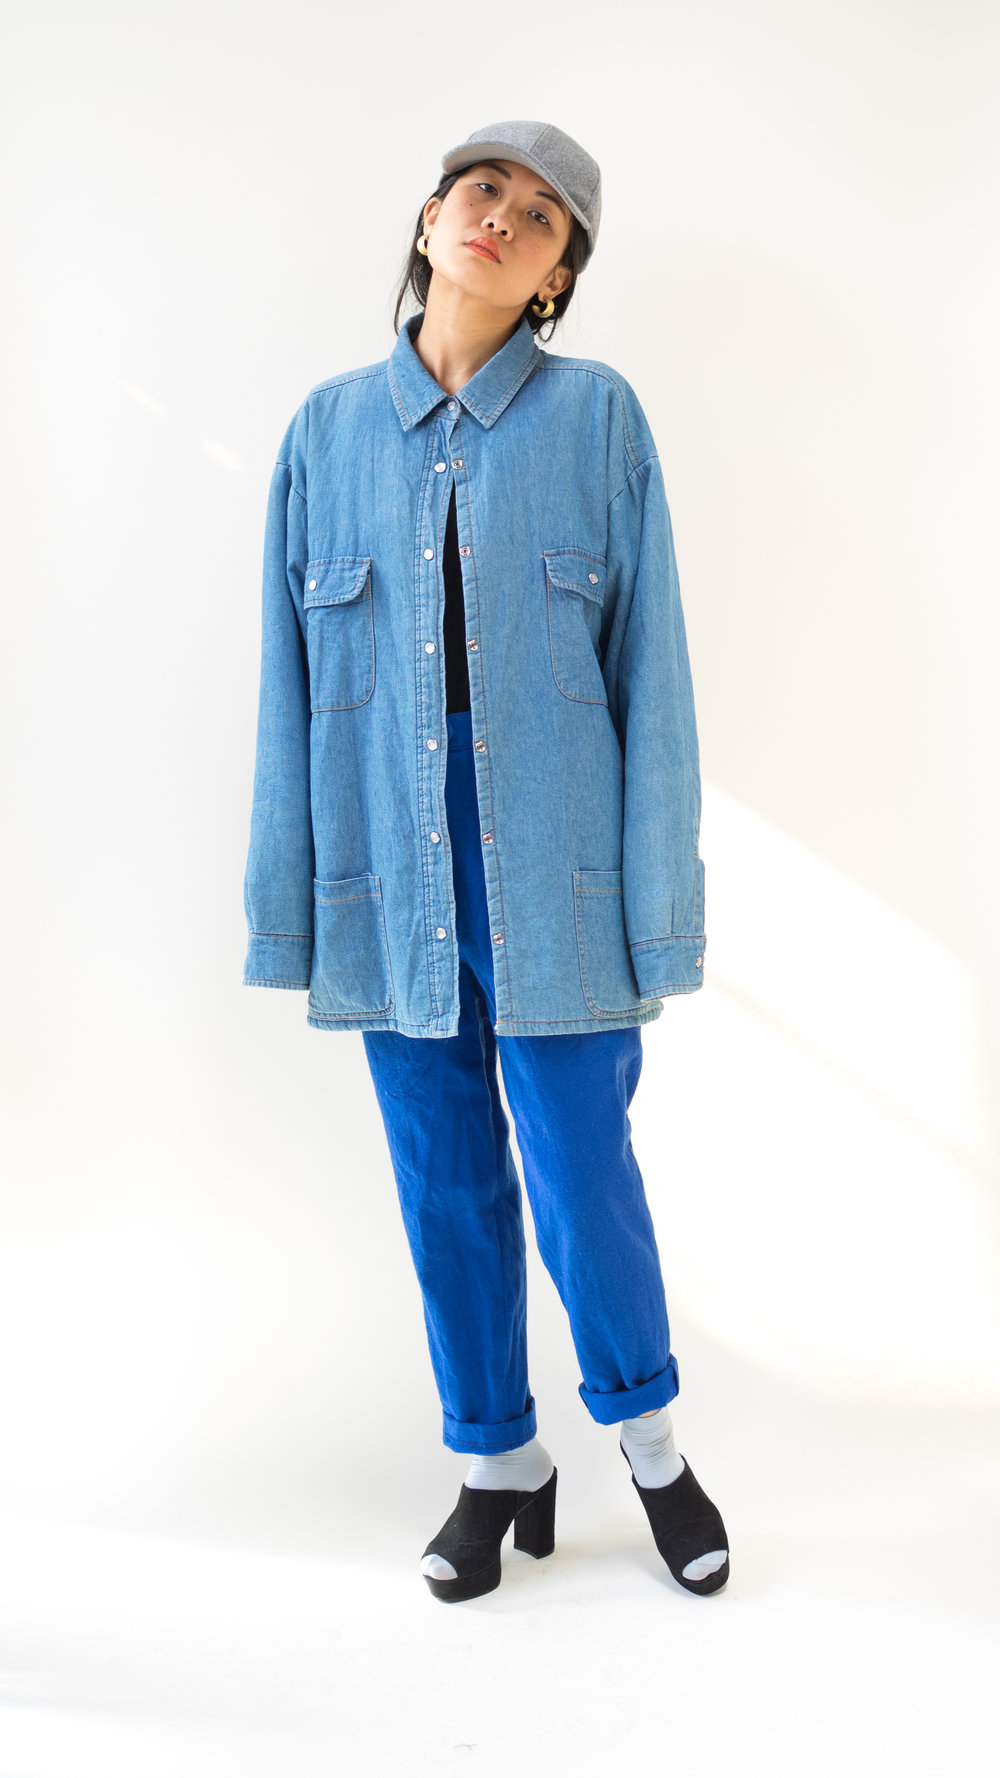 Lined Denim Button Down Shirt or Jacket Size 14/16 (Lrg, Womens)/(Sm/Med, Unisex) $40 SOLD